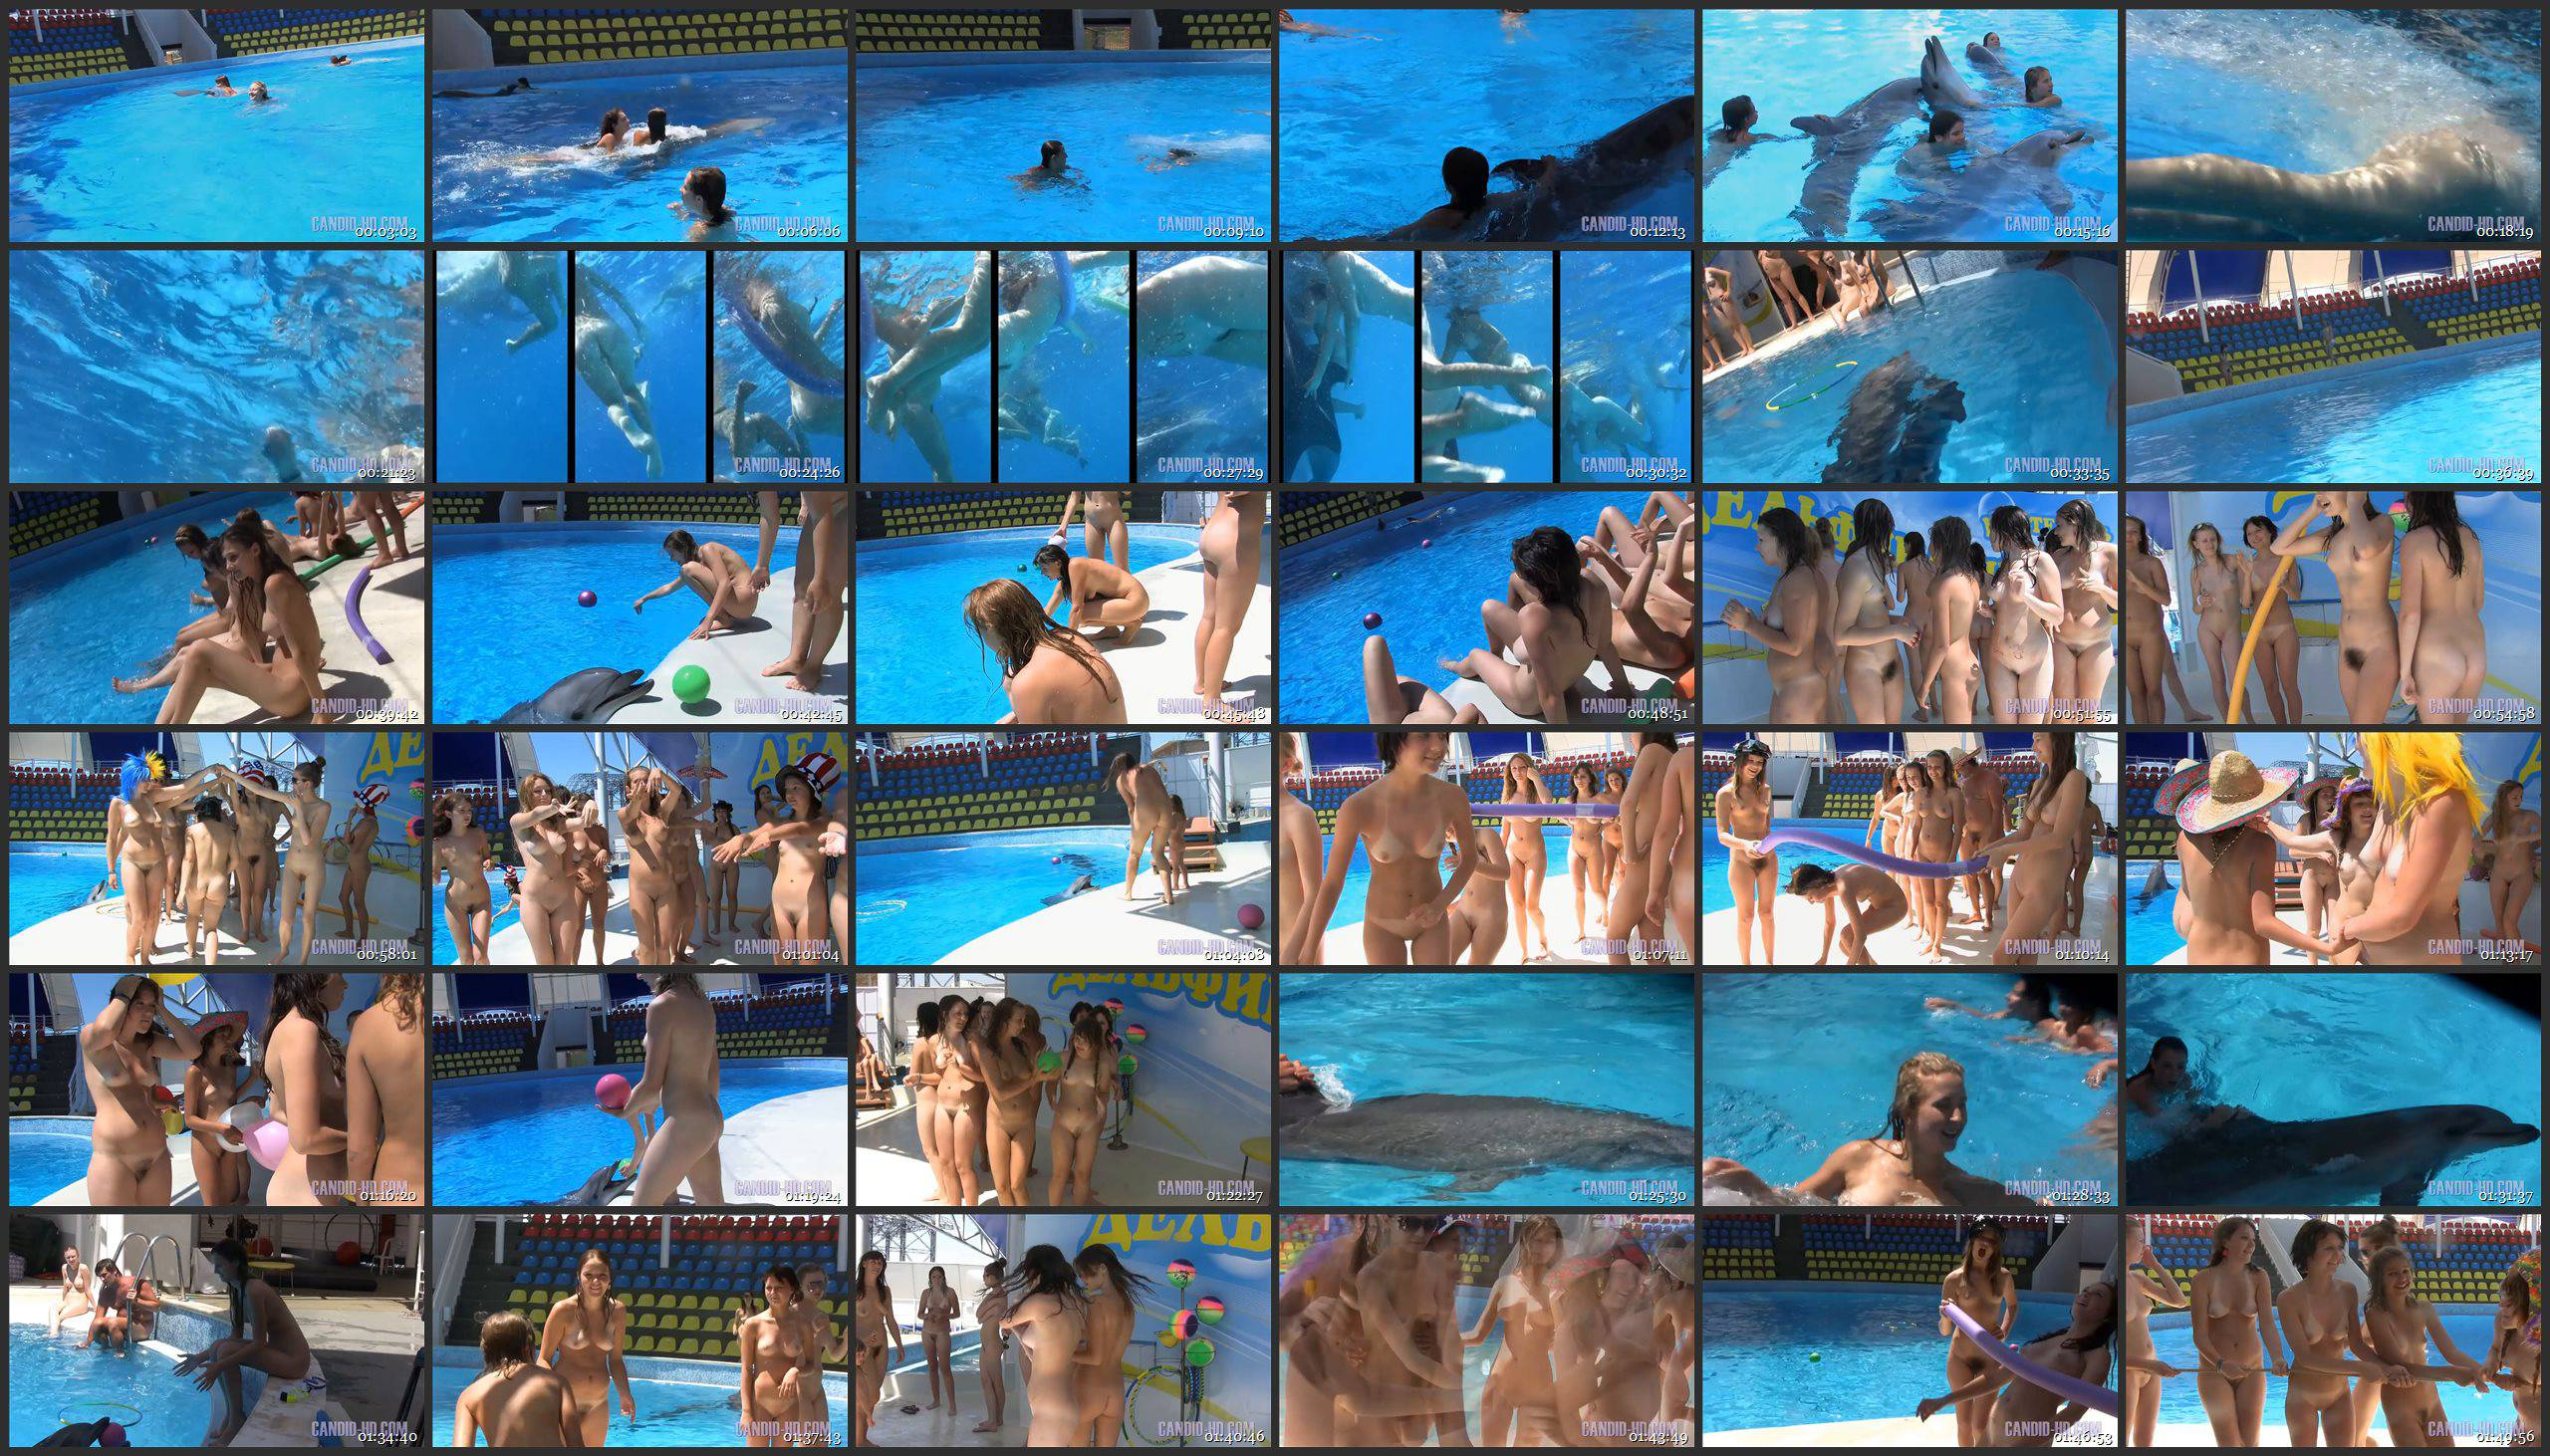 Amazing Dolphin Encounter - Thumbnails